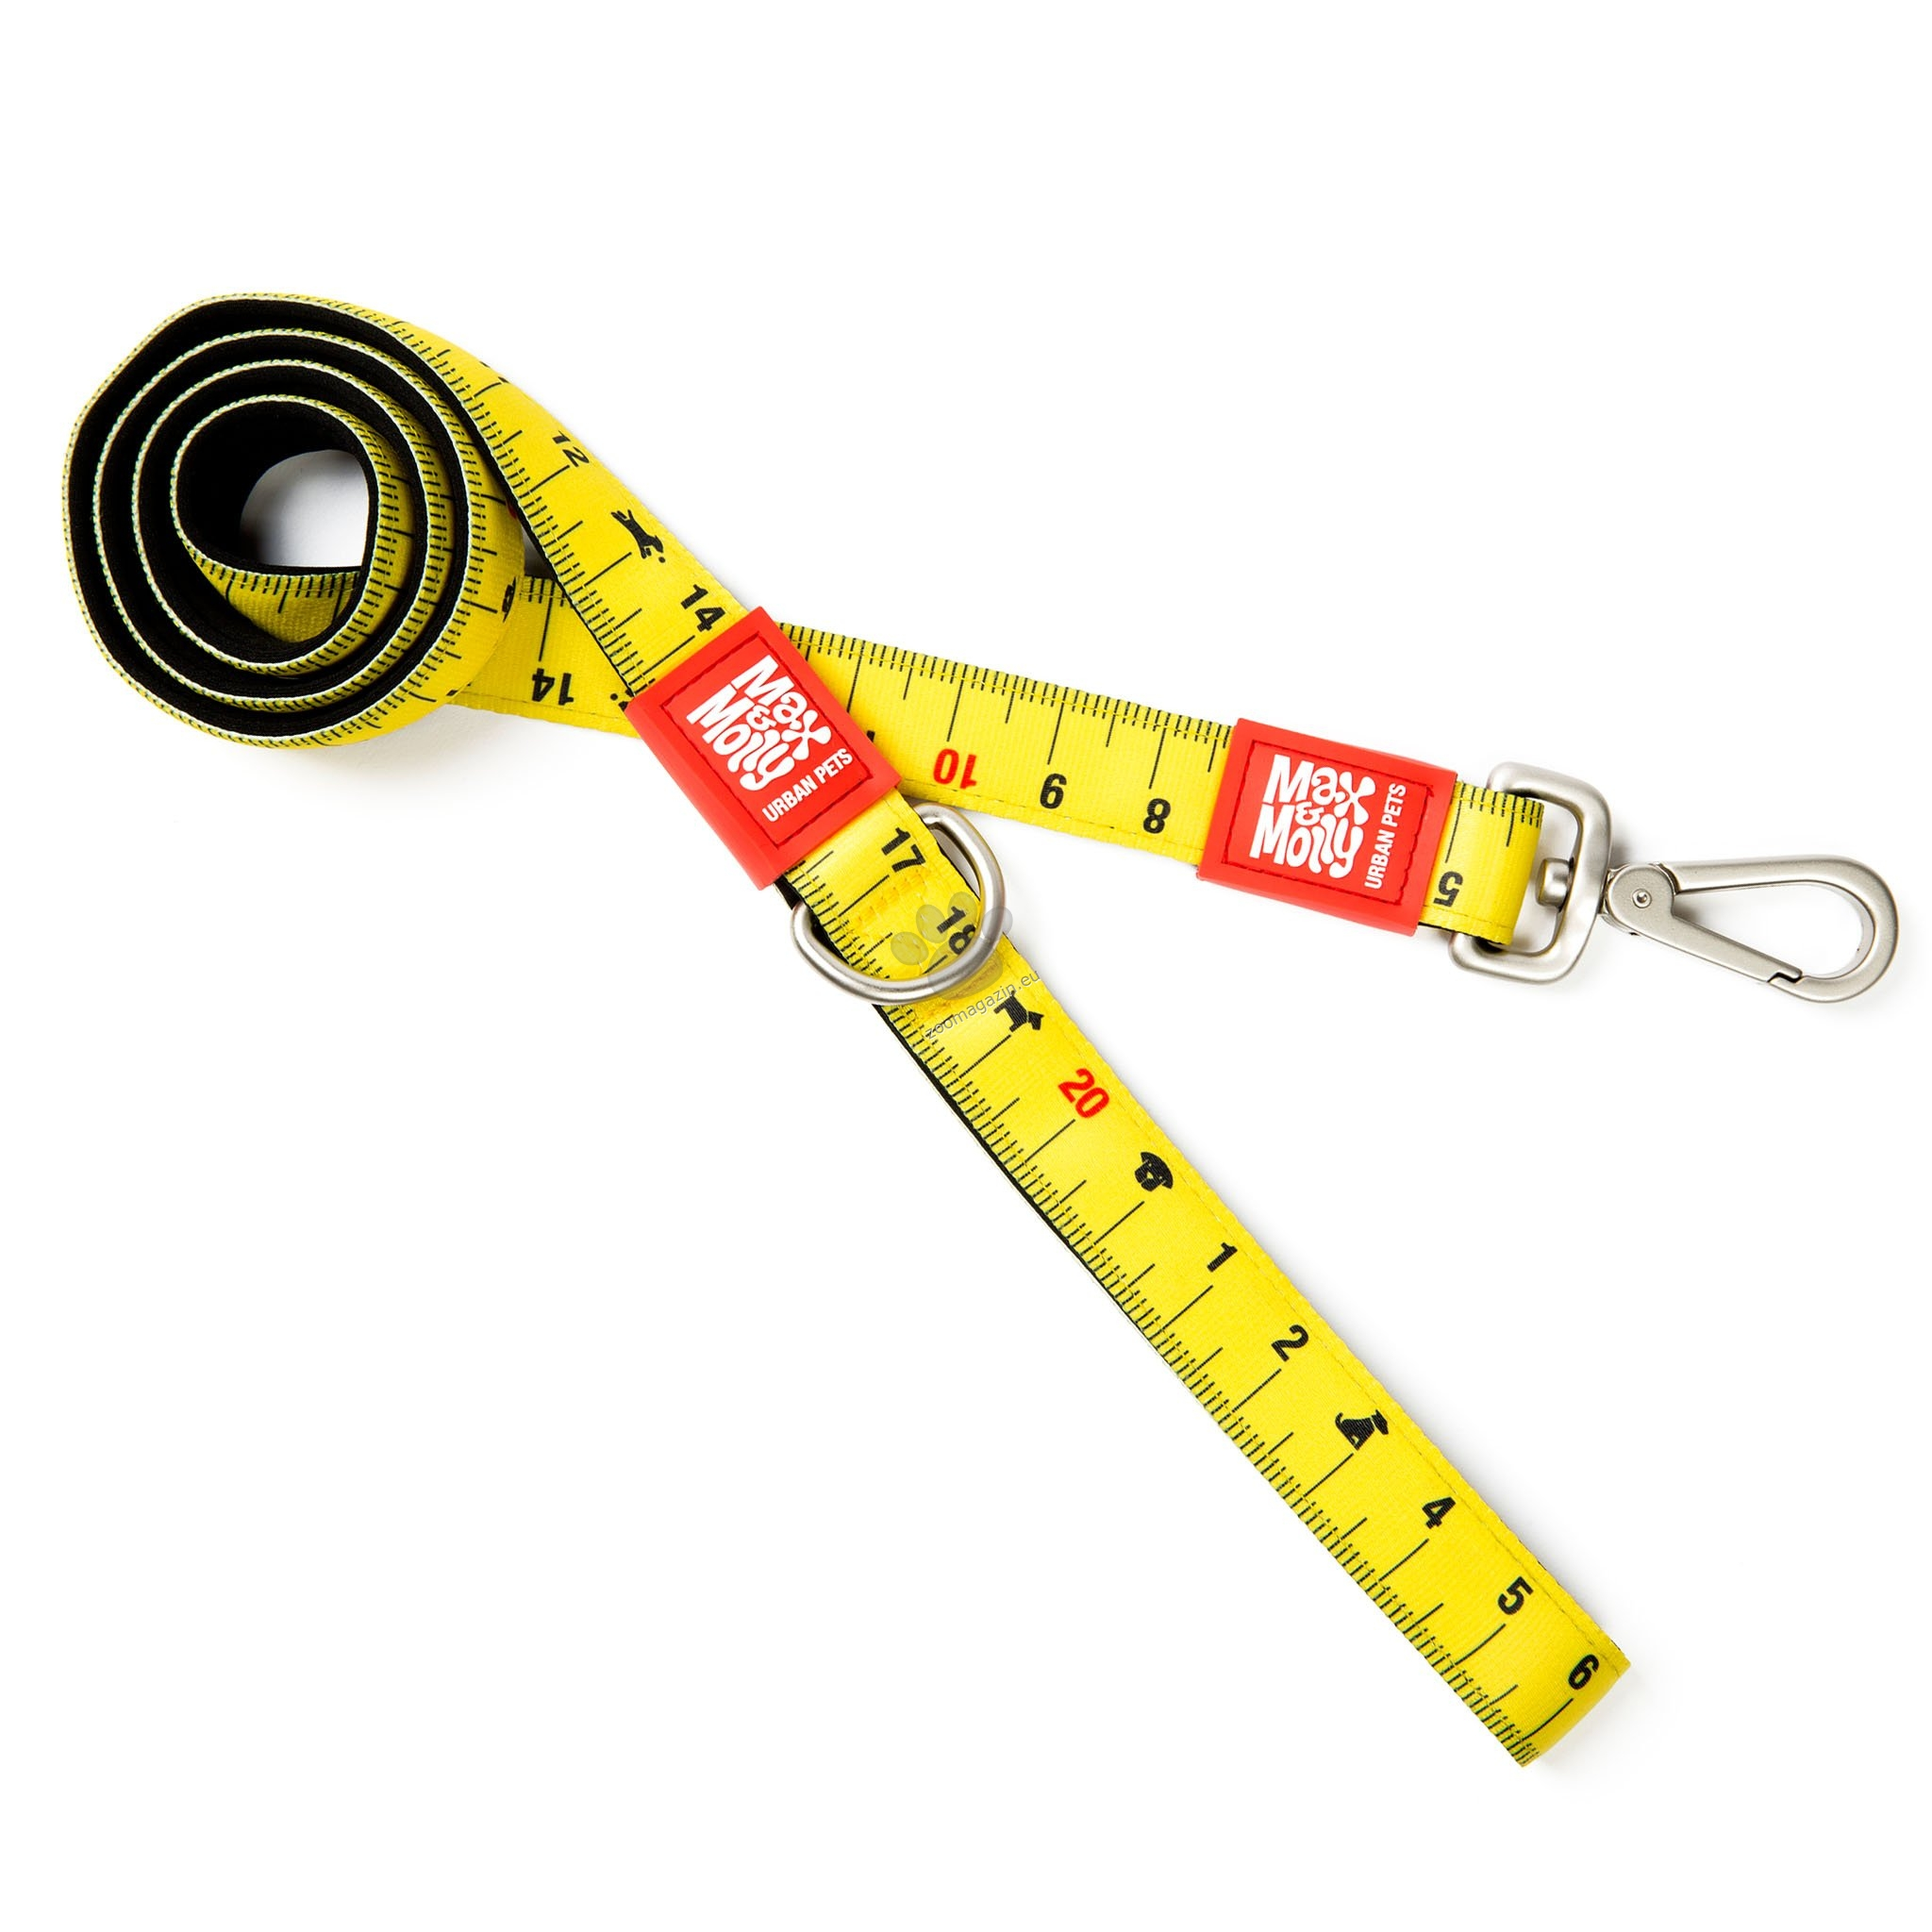 Max Molly Short Leash Ruler S - повод 120 см. / 15 мм.